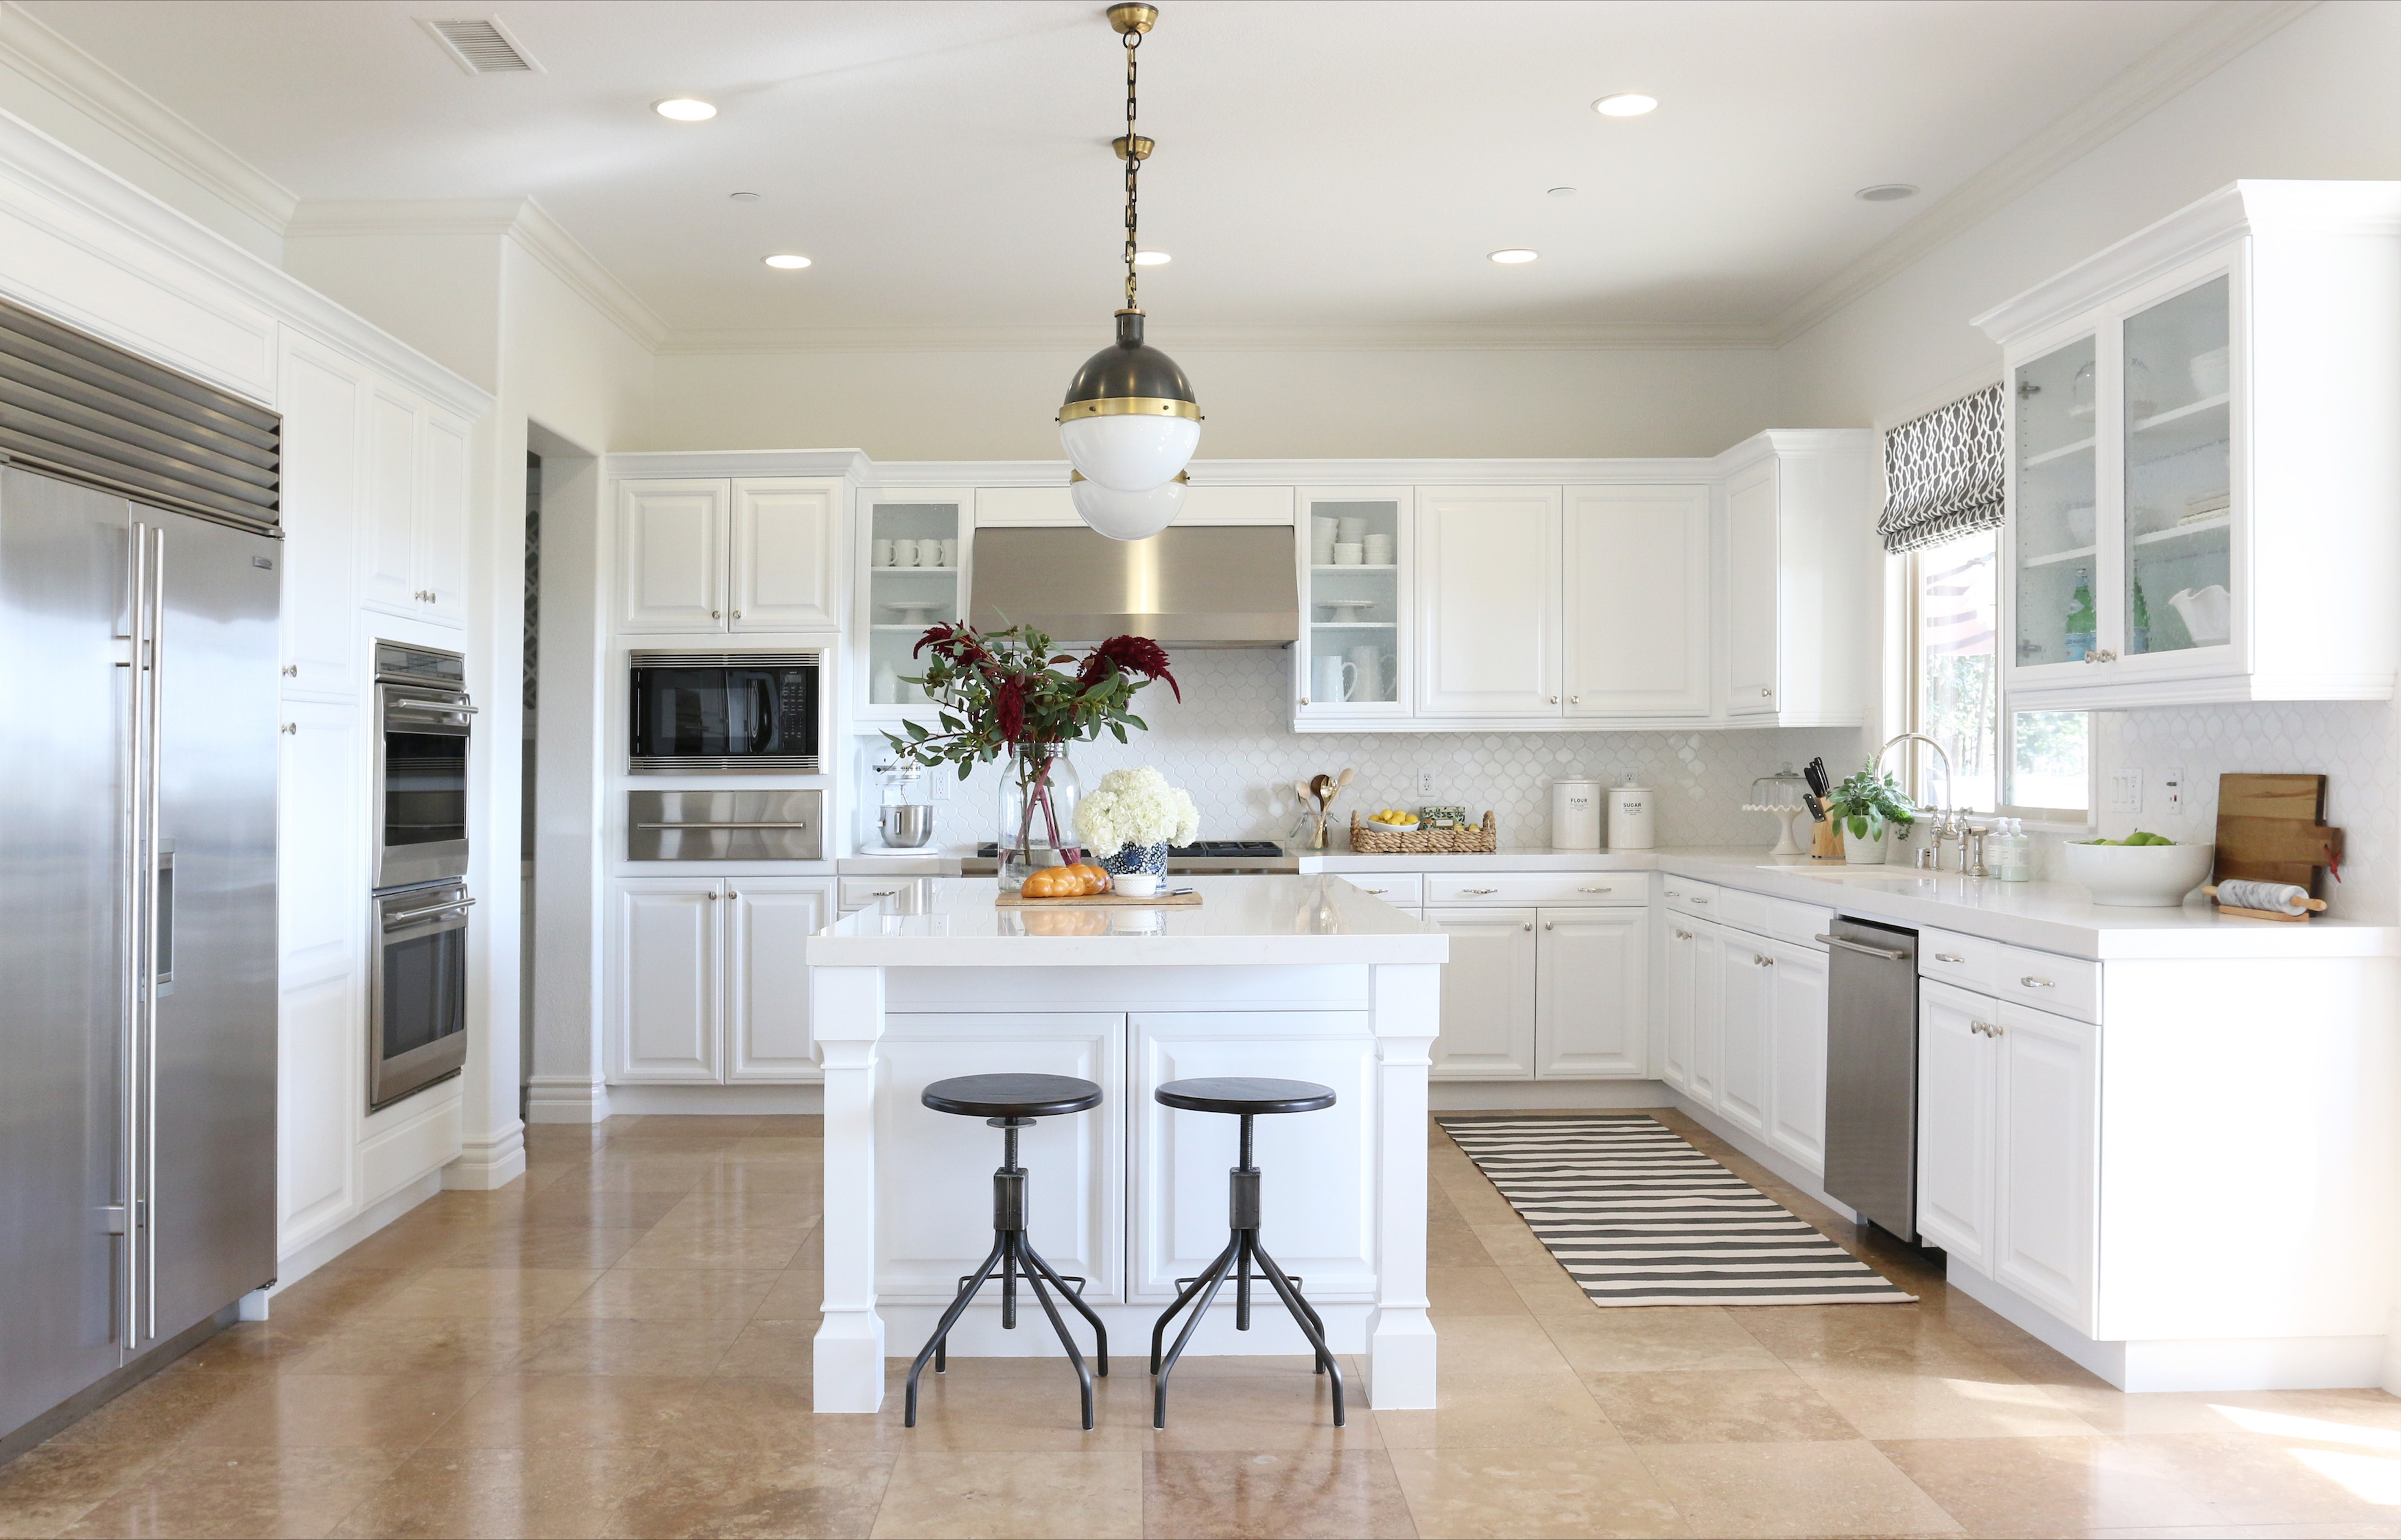 Pictures Of Kitchens With White Cabinets3500 X 2245